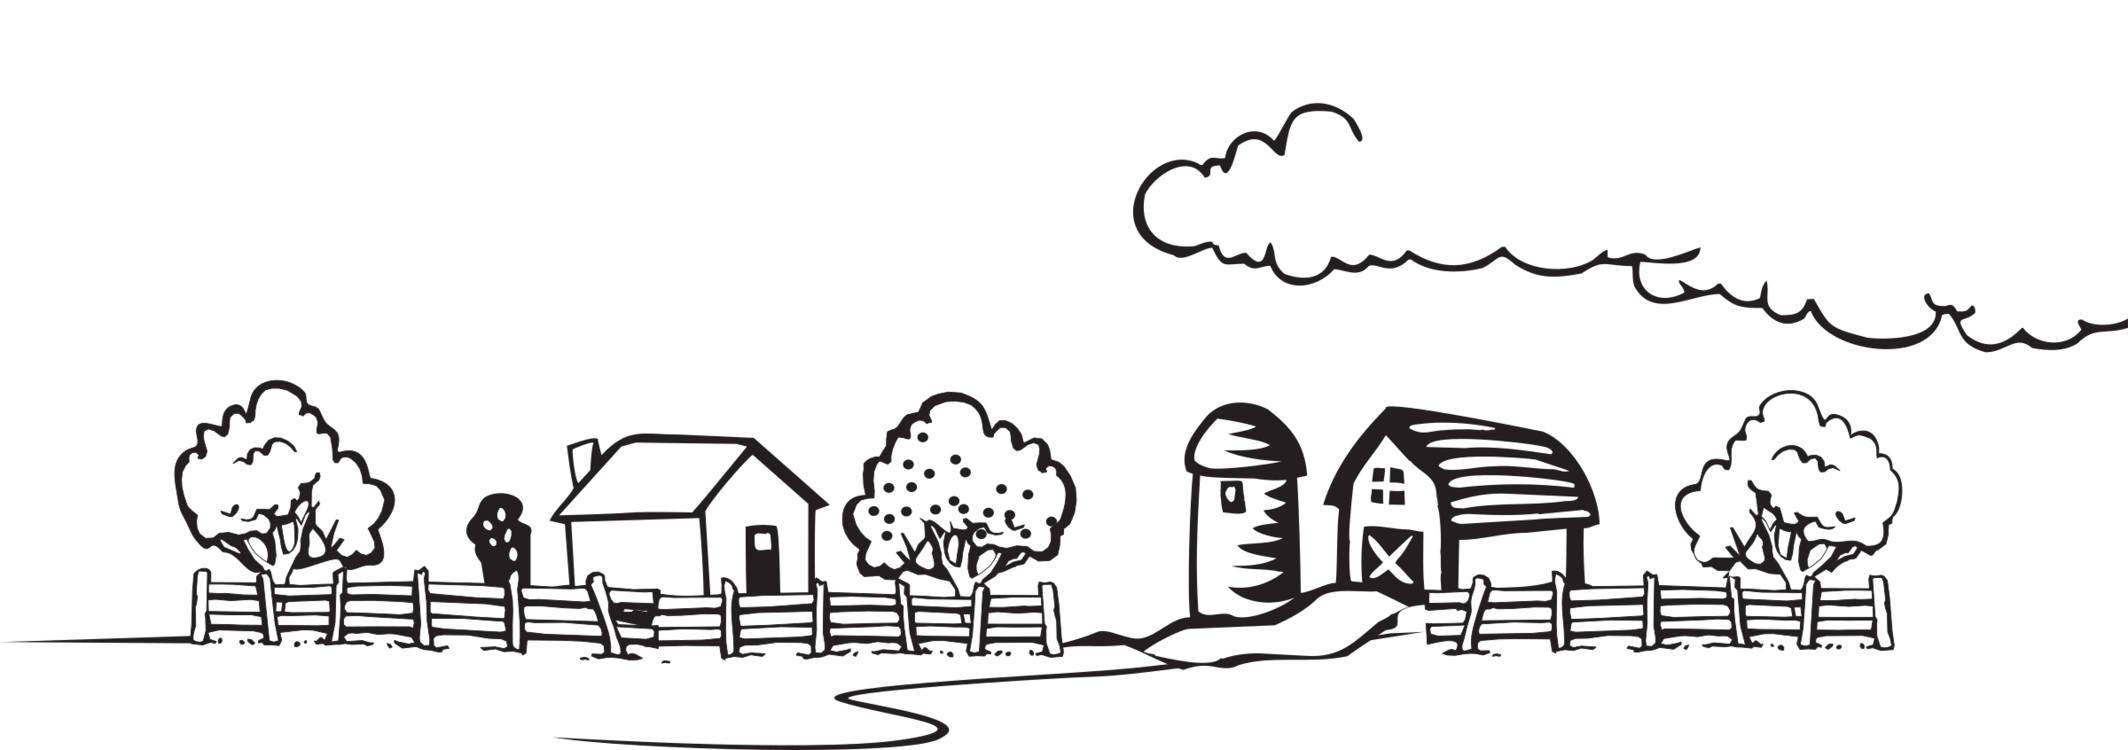 picture transparent stock Farmhouse Farmer Download Coloring book free commercial clipart